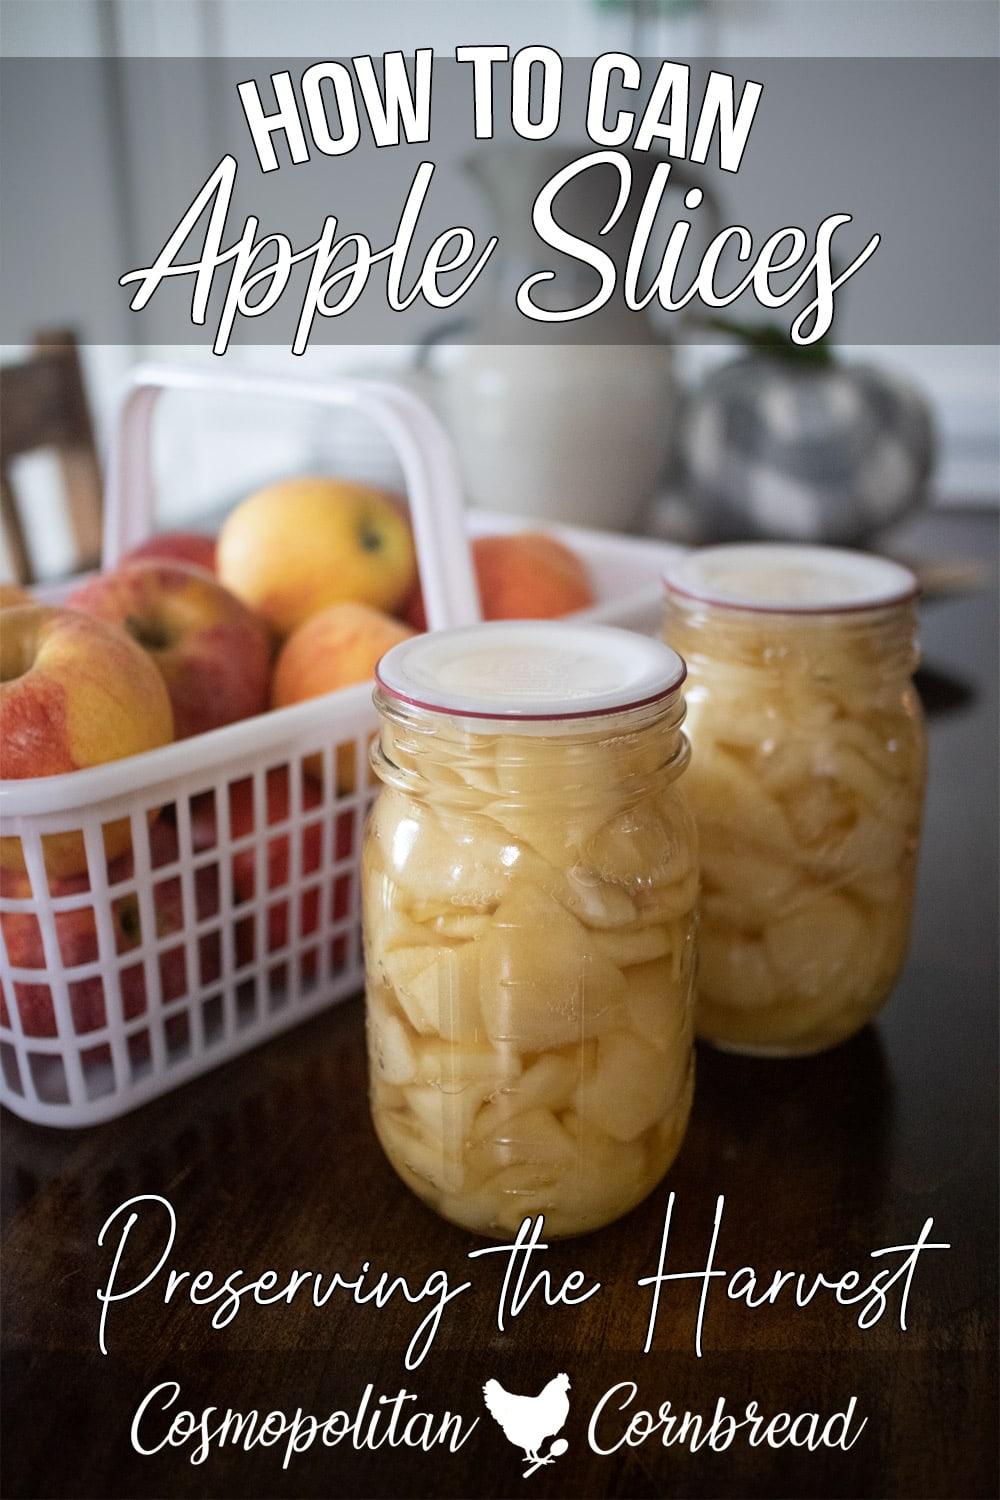 How to Can Apple Slices | Preserving the Harvest with Cosmopolitan Cornbread